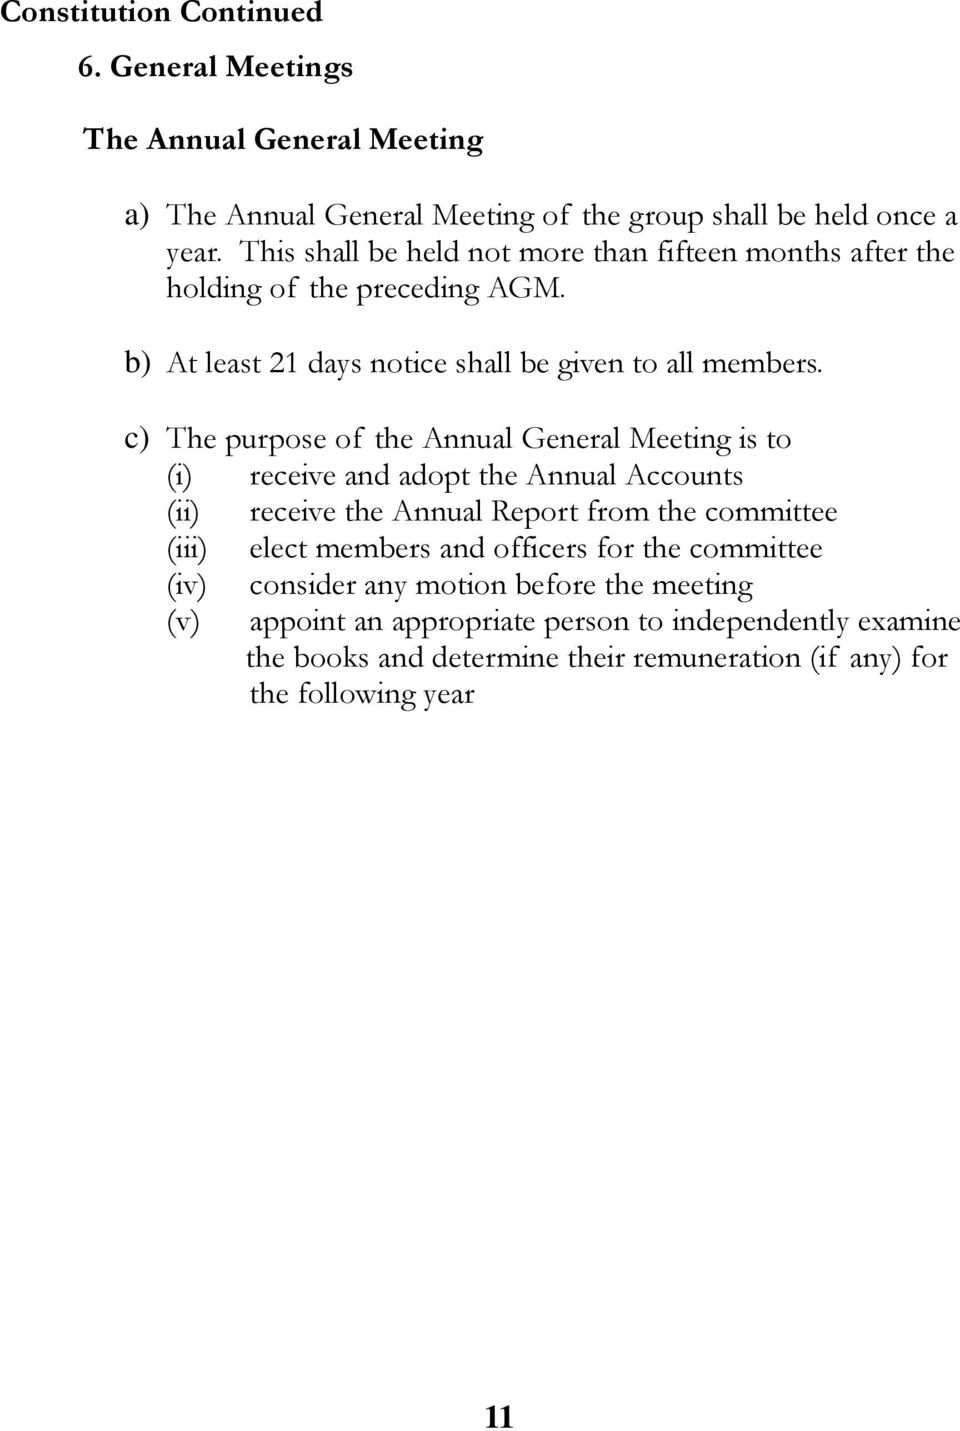 c) The purpose of the Annual General Meeting is to (i) receive and adopt the Annual Accounts (ii) receive the Annual Report from the committee (iii) elect members